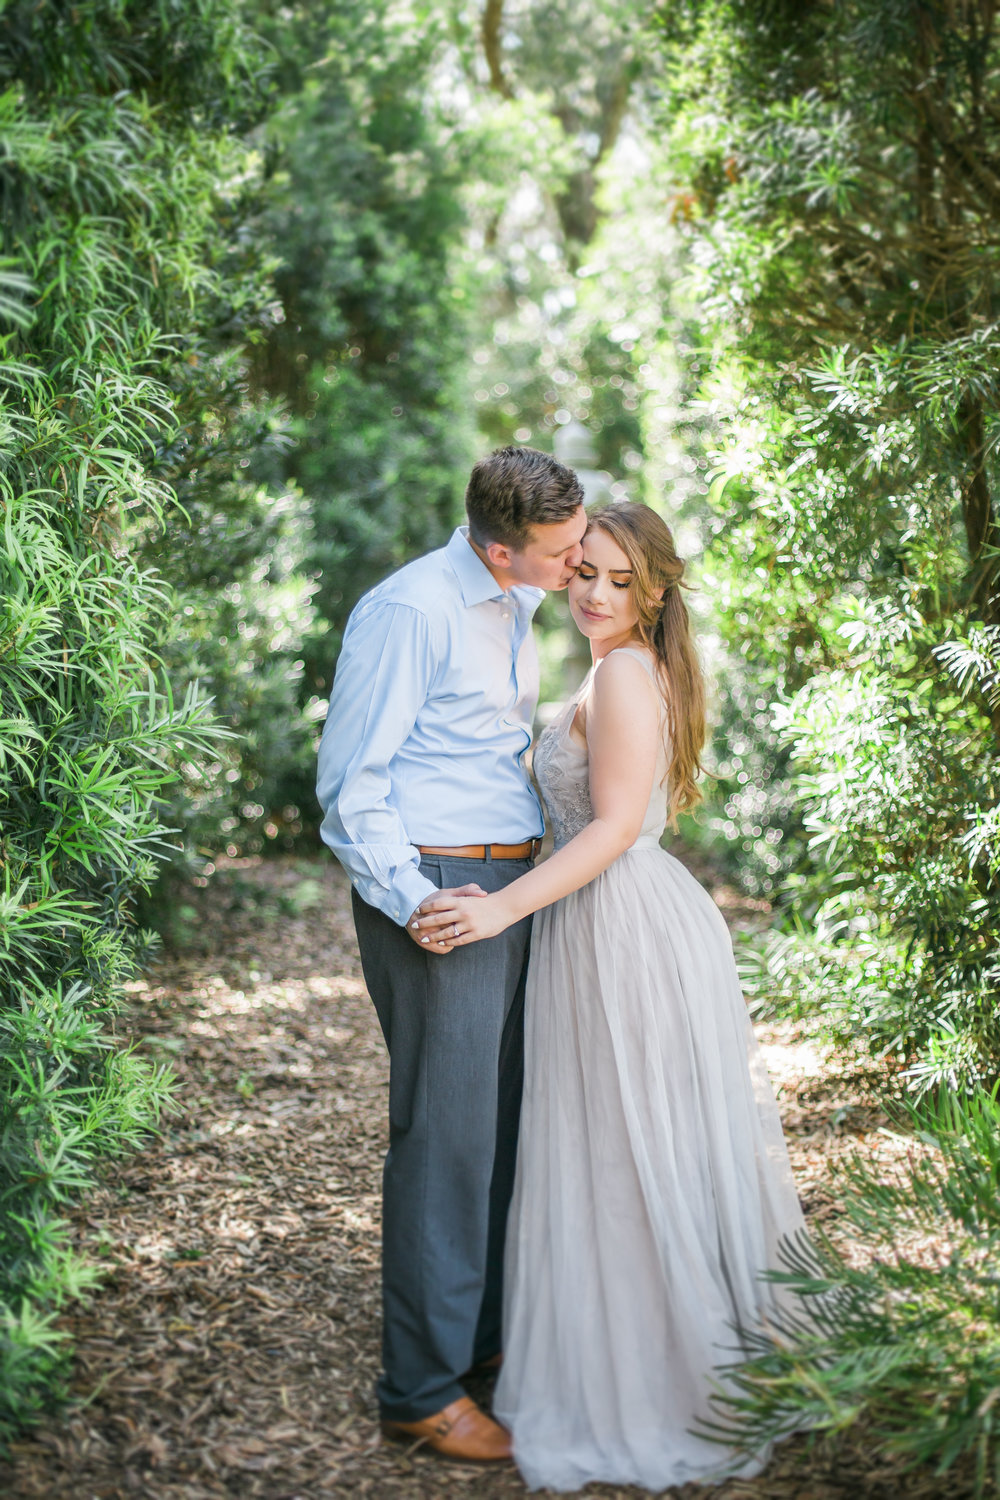 Scarlett + Derek - Bok Tower Gardens Wedding Photographer - Bok Tower Gardens Engagement Session - Preview Photos - Emily & Co. Photography (28).jpg